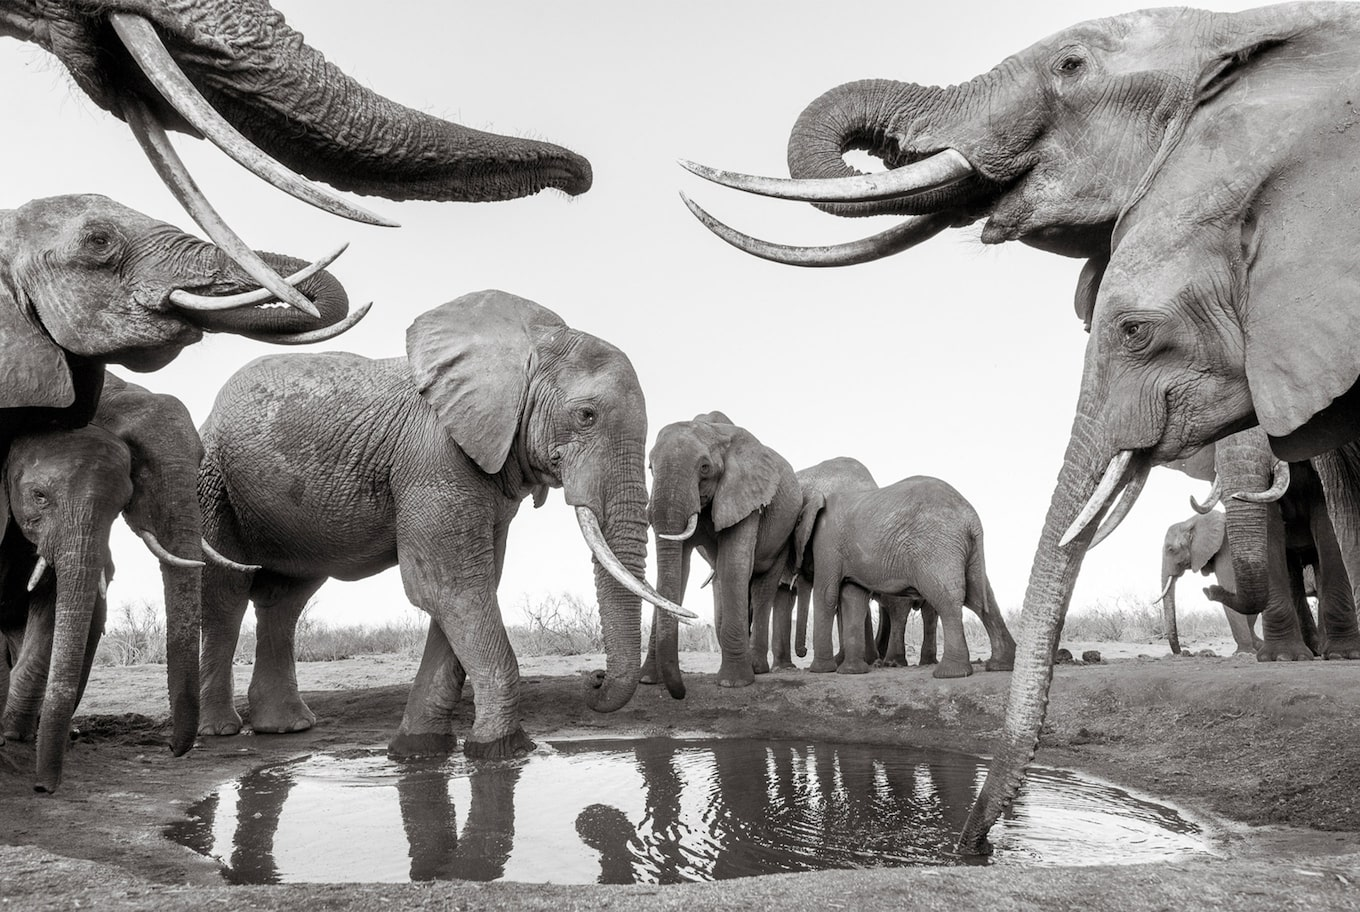 will burrard lucas sony alpha 6500 black and white elephants drinking from a puddle